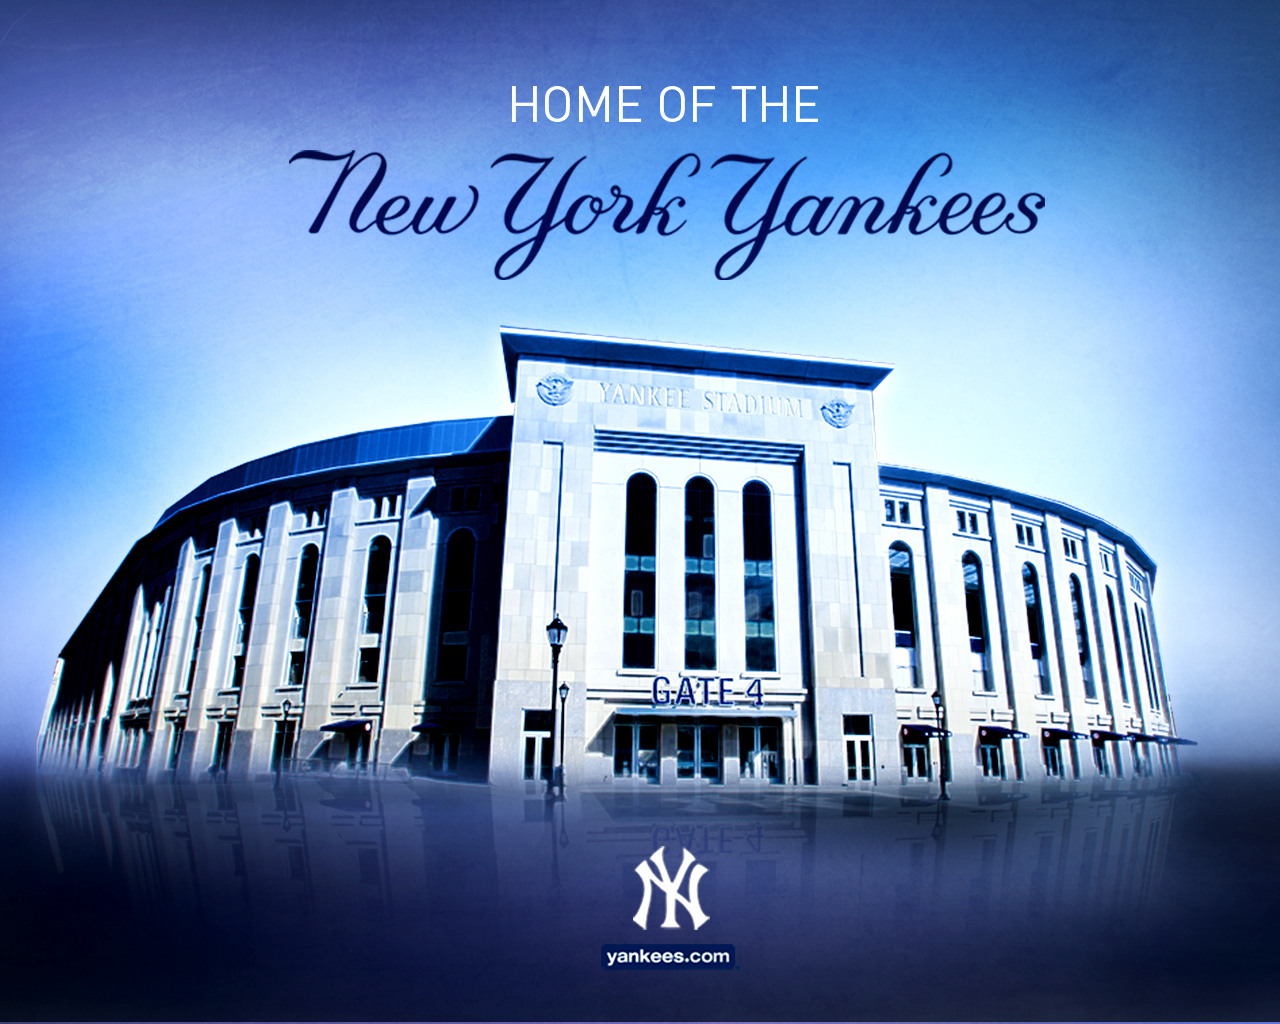 Yankees Iphone Wallpaper Cool HD Wallpapers 1280x1024